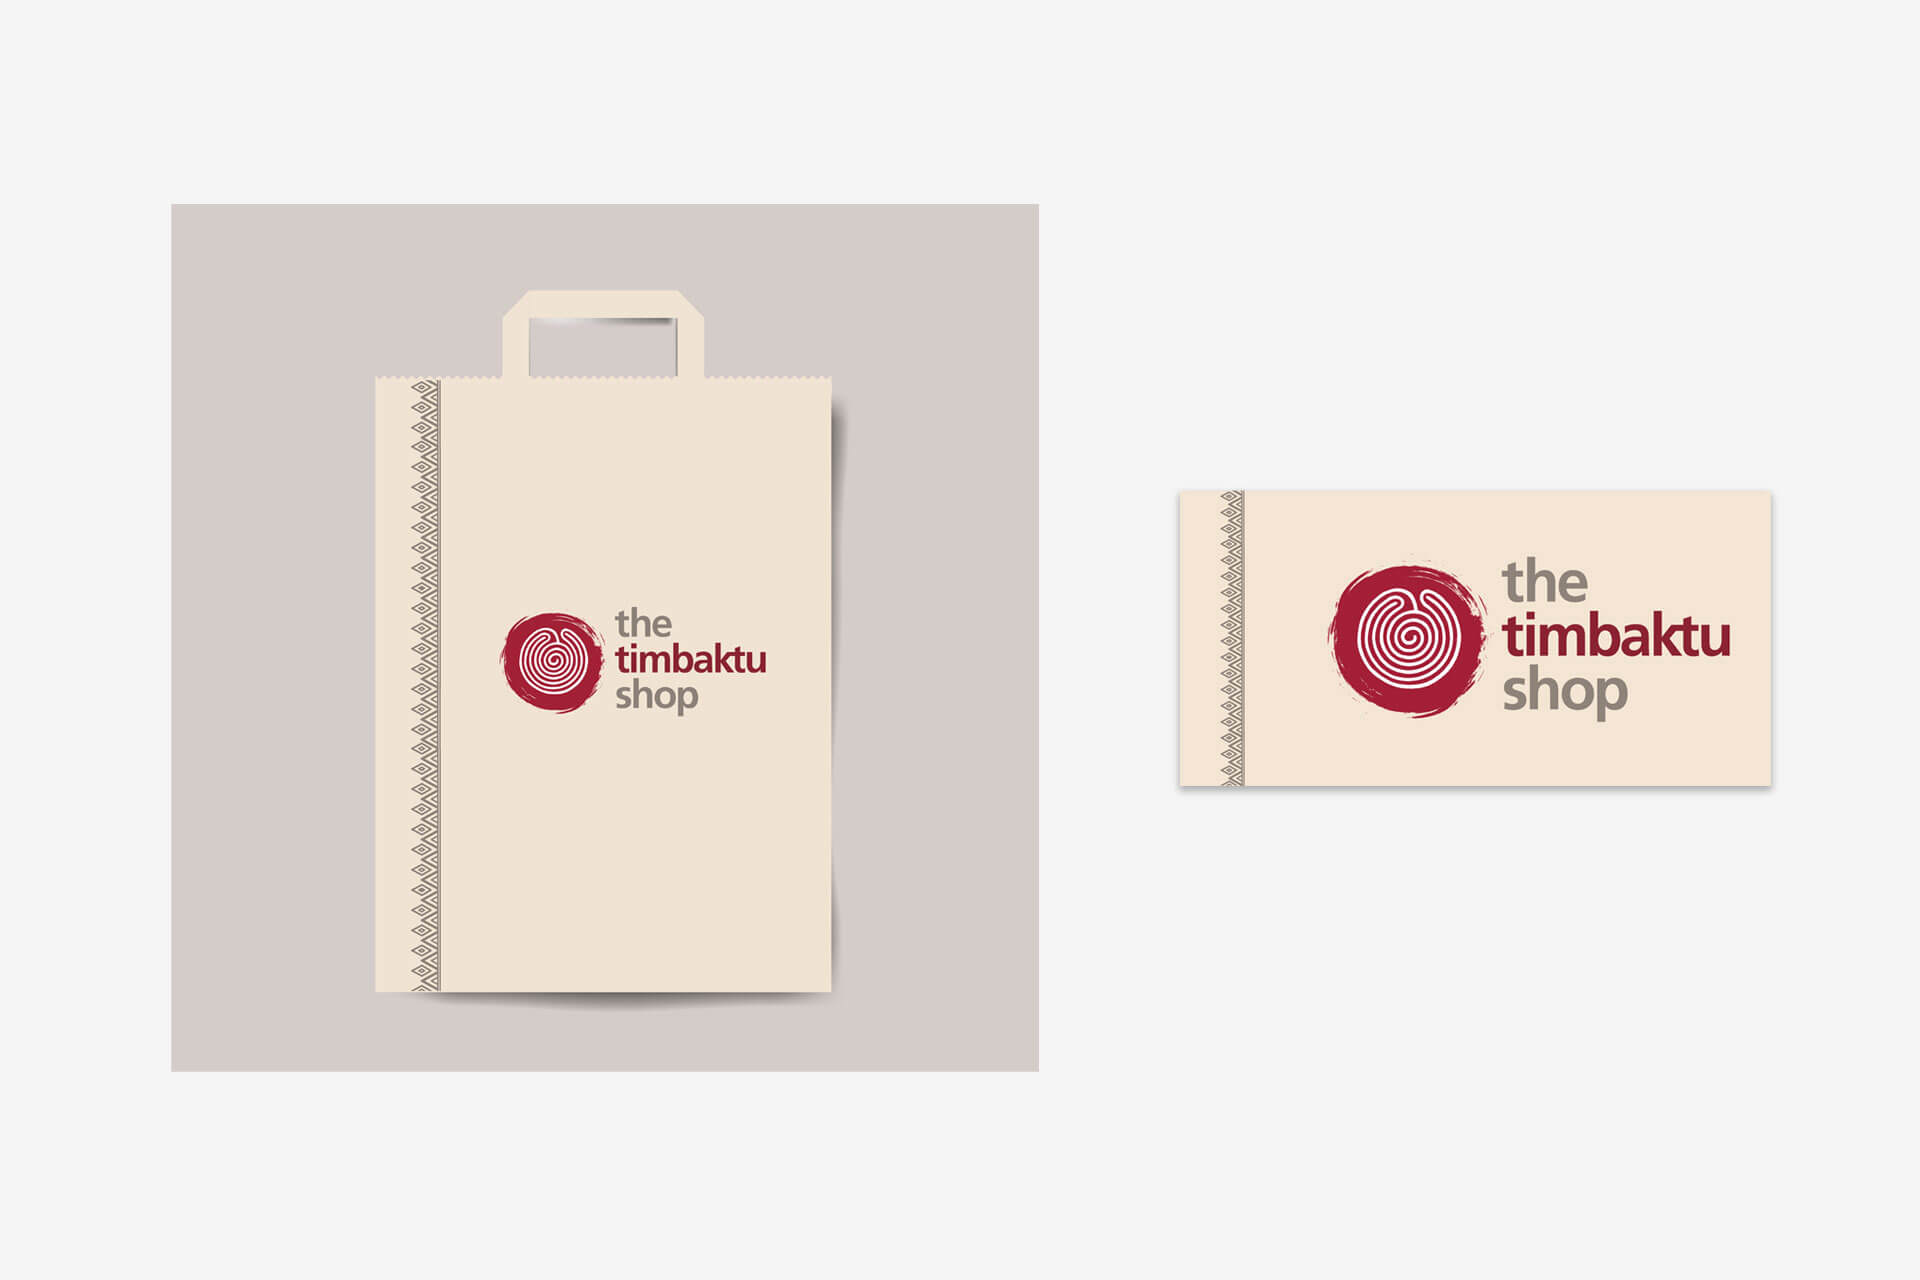 Timbaktu Shop collateral design